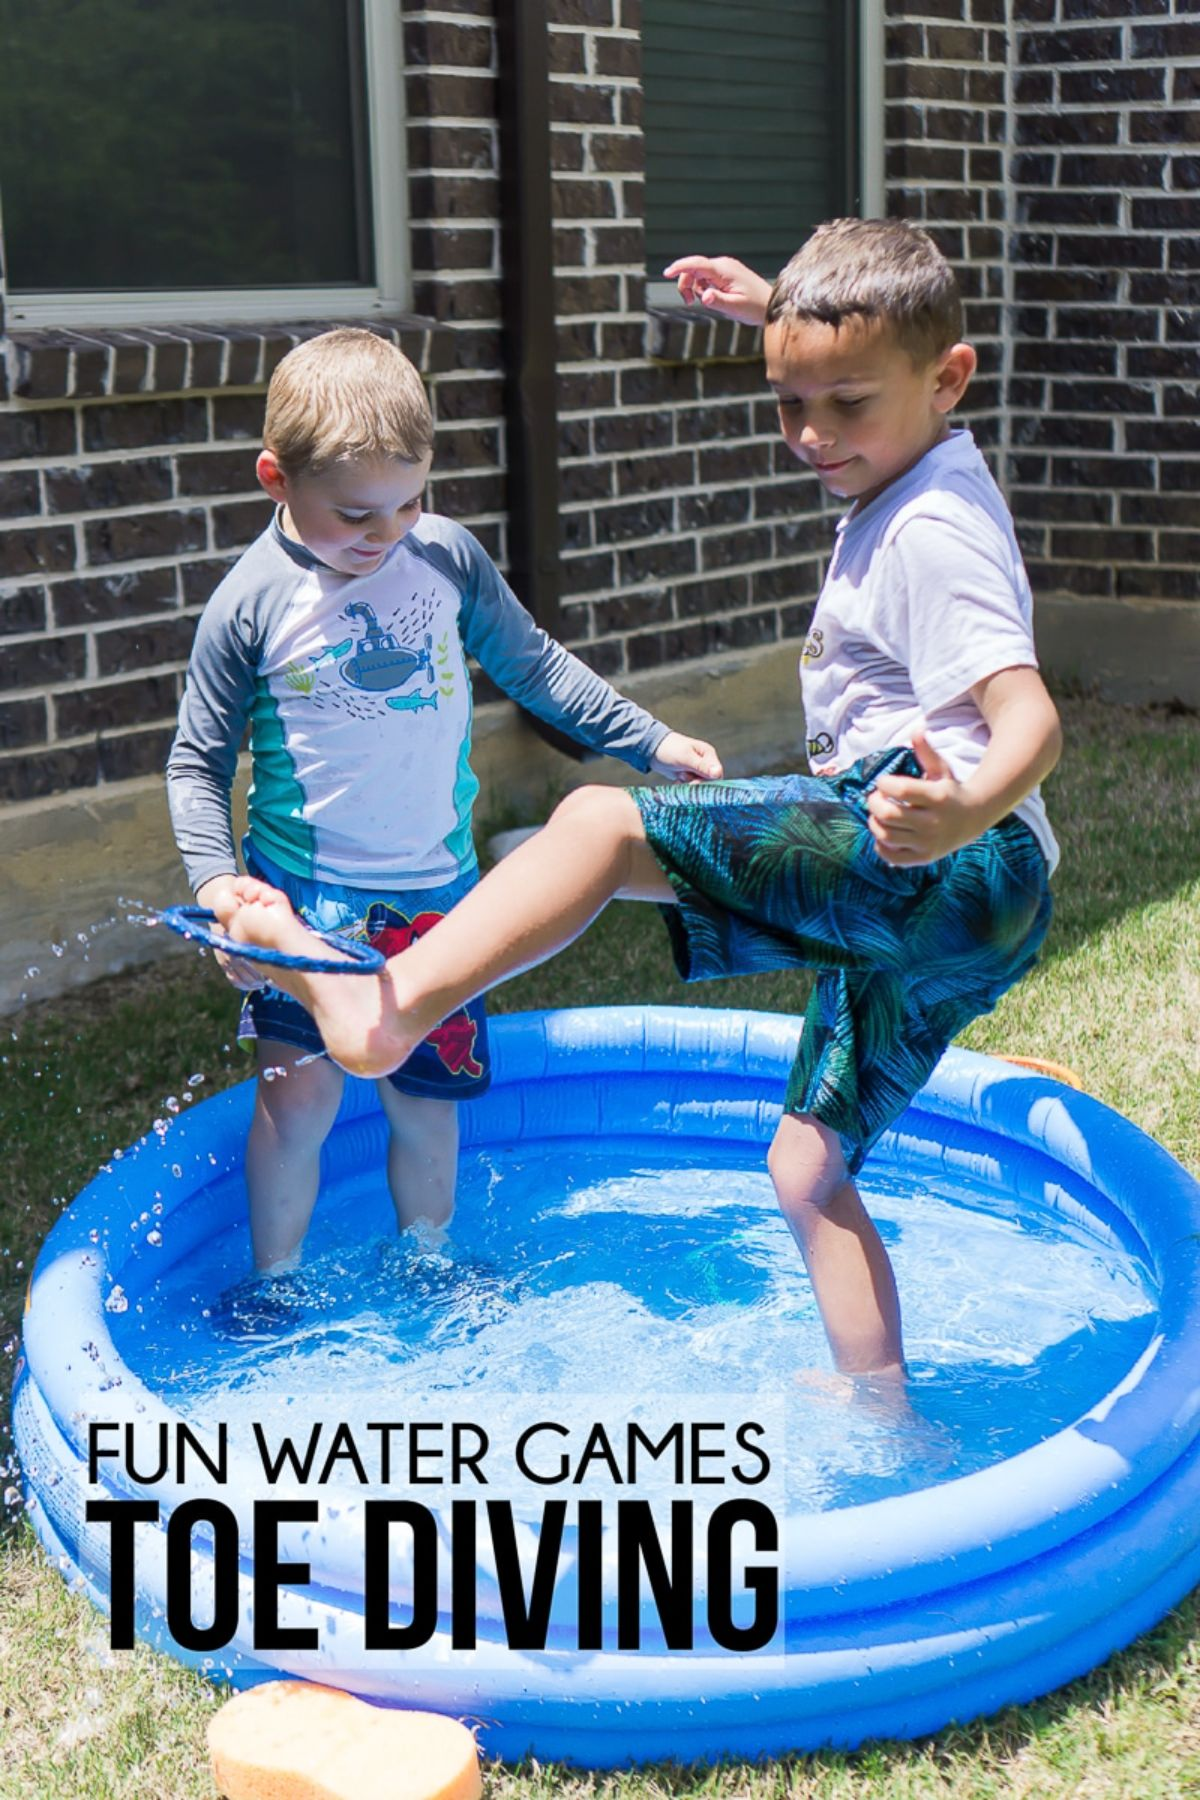 2 boys are in a small blue paddling pool filled with water. One boy has lifted his left foot up and is balancing a blue ring on it